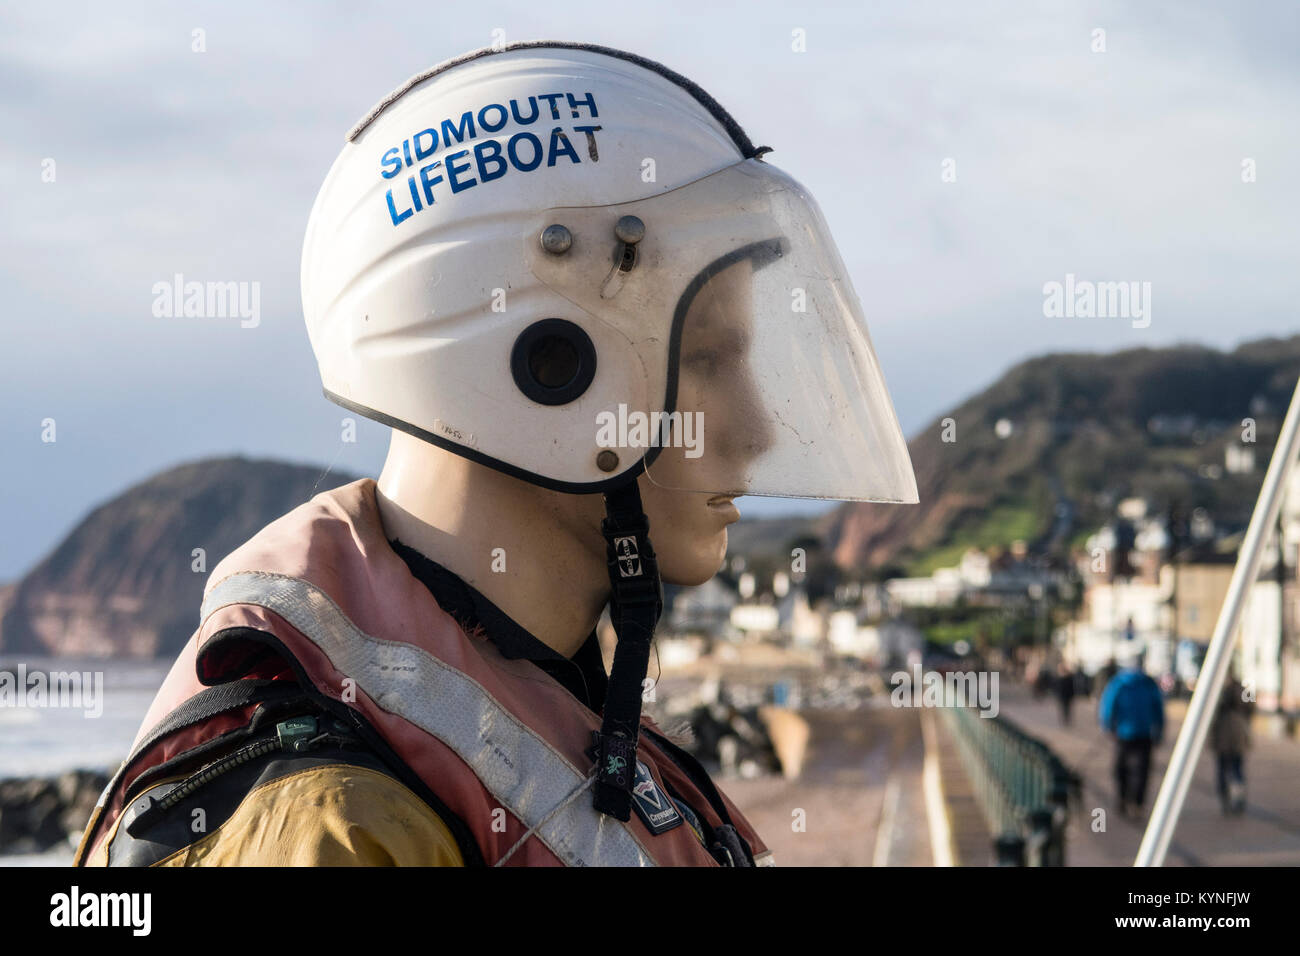 Collecting dummy outside Sidmouth Lifeboat station. Sidmouth lifeboat is not supported by theRNLI, but relies entirely - Stock Image